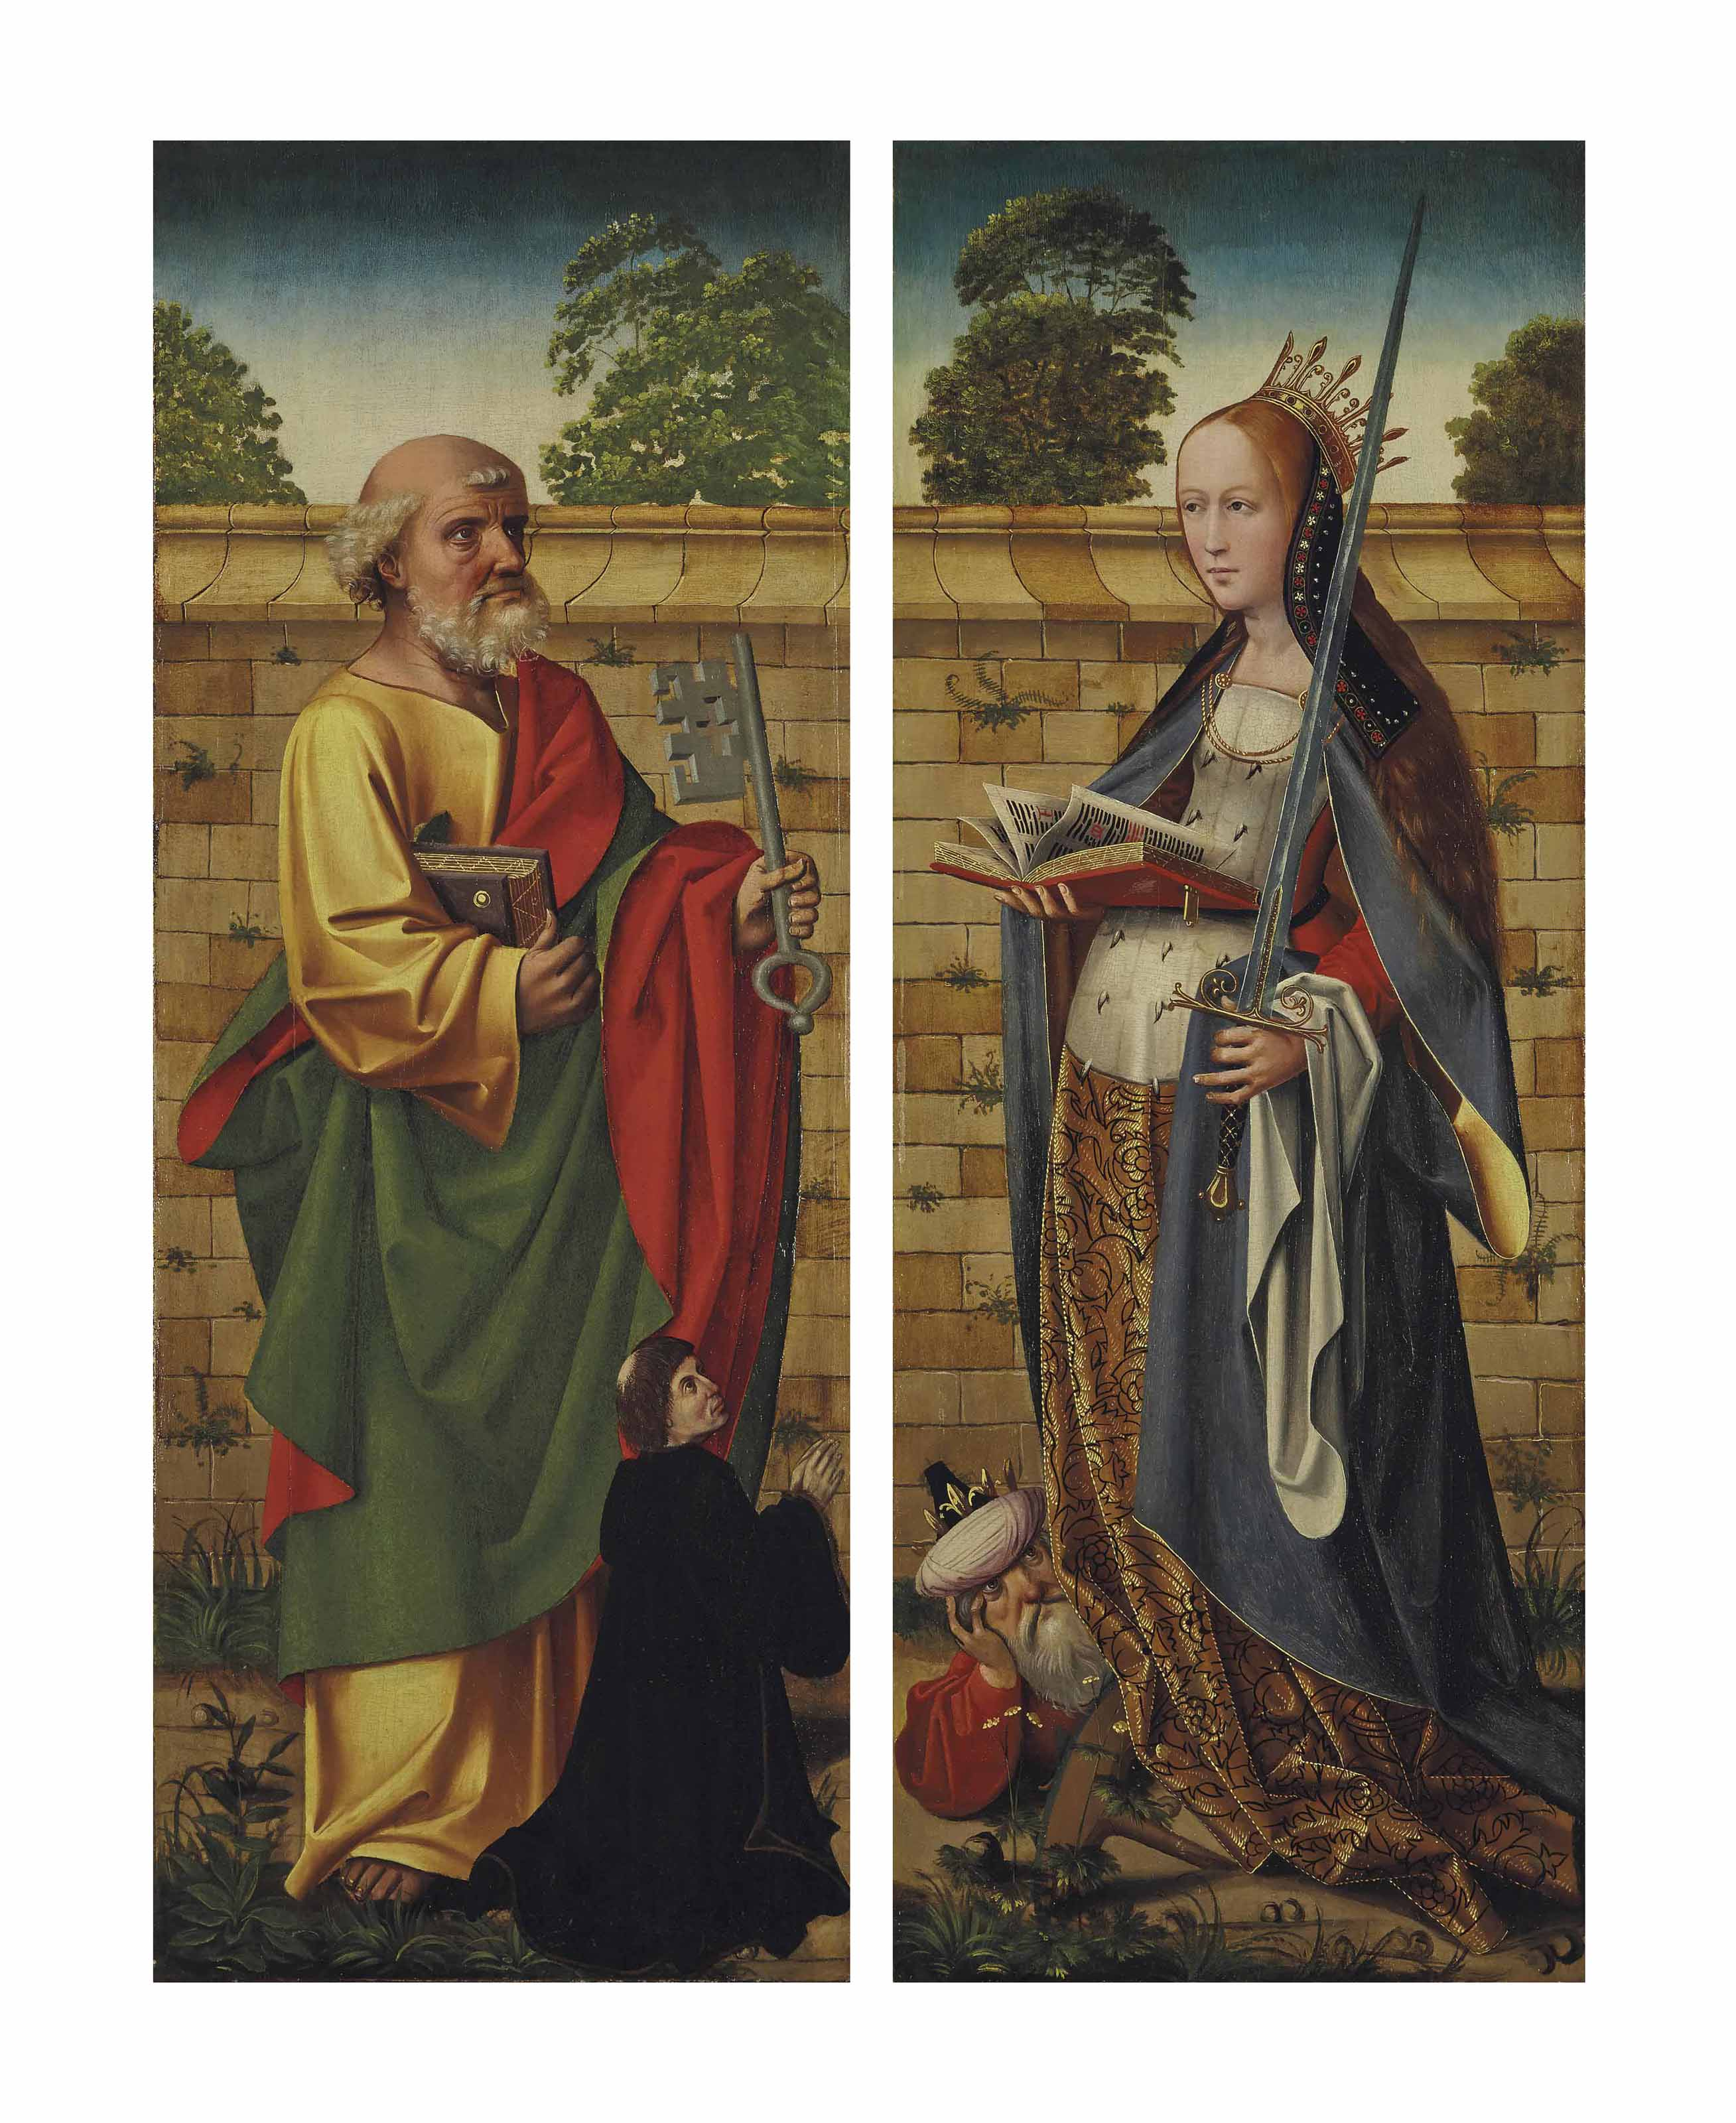 The wings of a triptych: Saint Peter with a donor; and Saint Catherine of Alexandria with the Emperor Maxentius at her feet